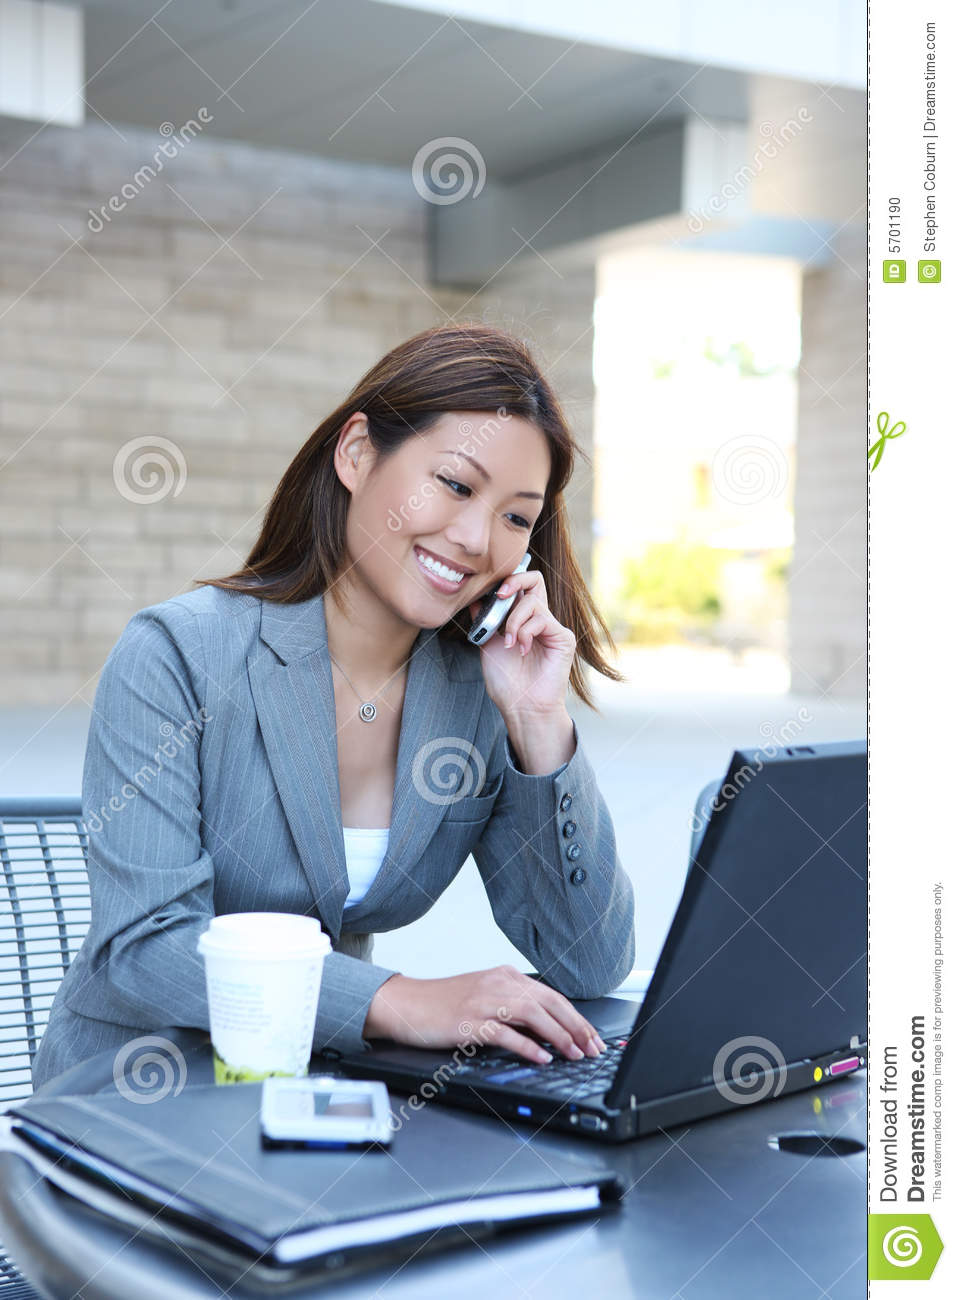 Asian Business Woman on Laptop